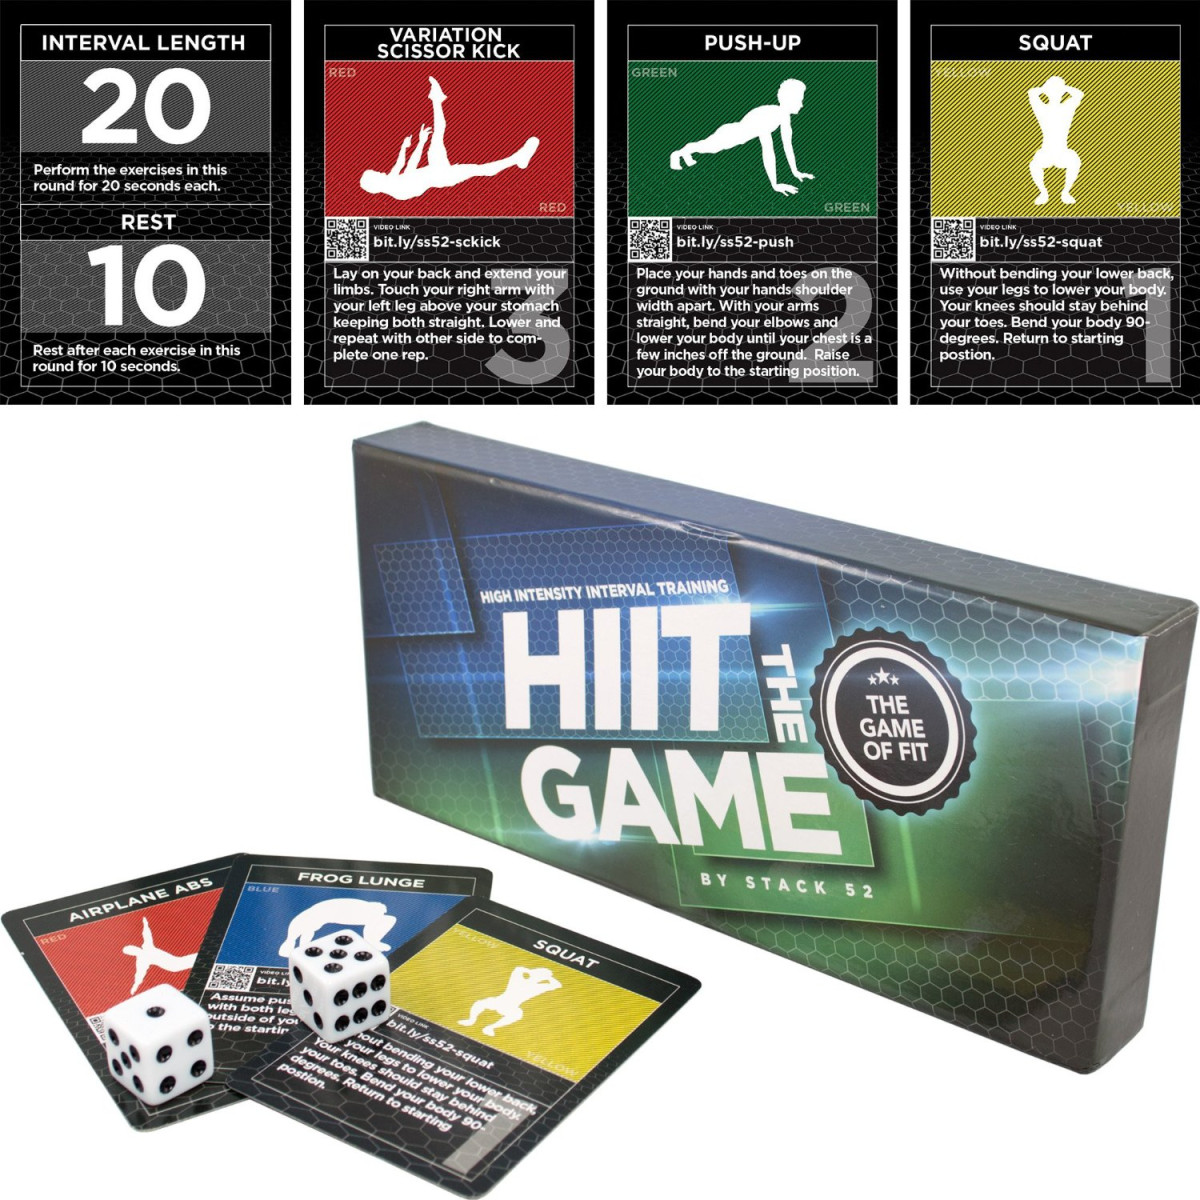 The HIIT Interval Workout Game by Stack 52  Designed by Military Fitness  Expert  Video Instructions Included  Bodyweight Exercises, No Equipment